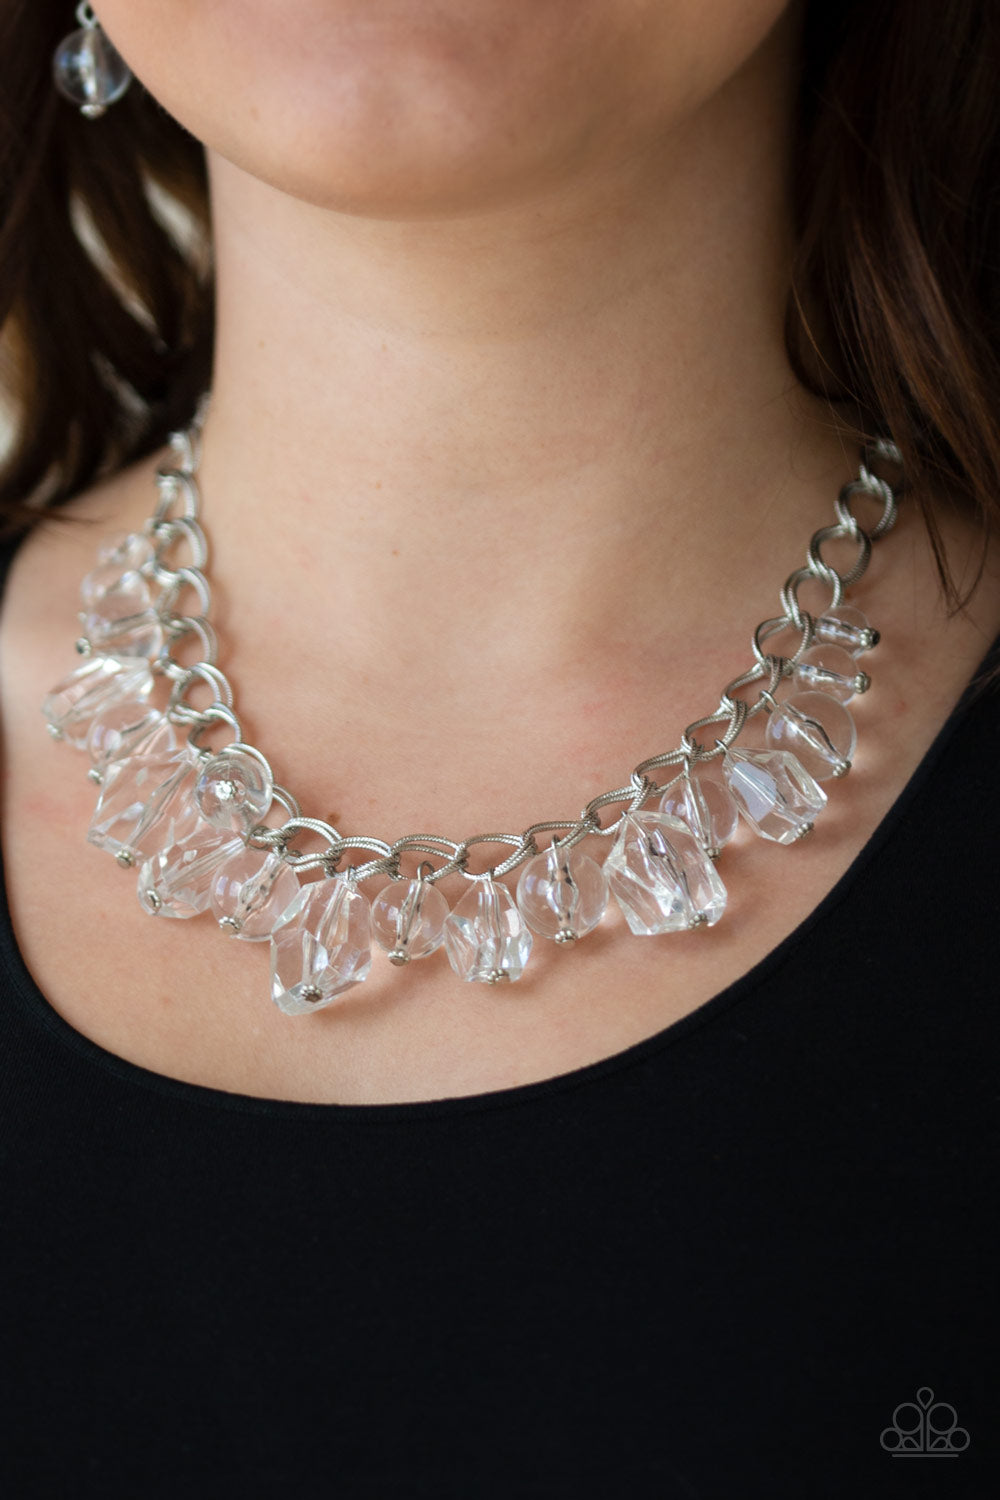 Varying in shape and shimmer, smooth and faceted glassy beads trickle from doubled silver chain links, creating a glamorous fringe below the collar. Features an adjustable clasp closure.  Sold as one individual necklace. Includes one pair of matching earrings.  Always nickel and lead free.